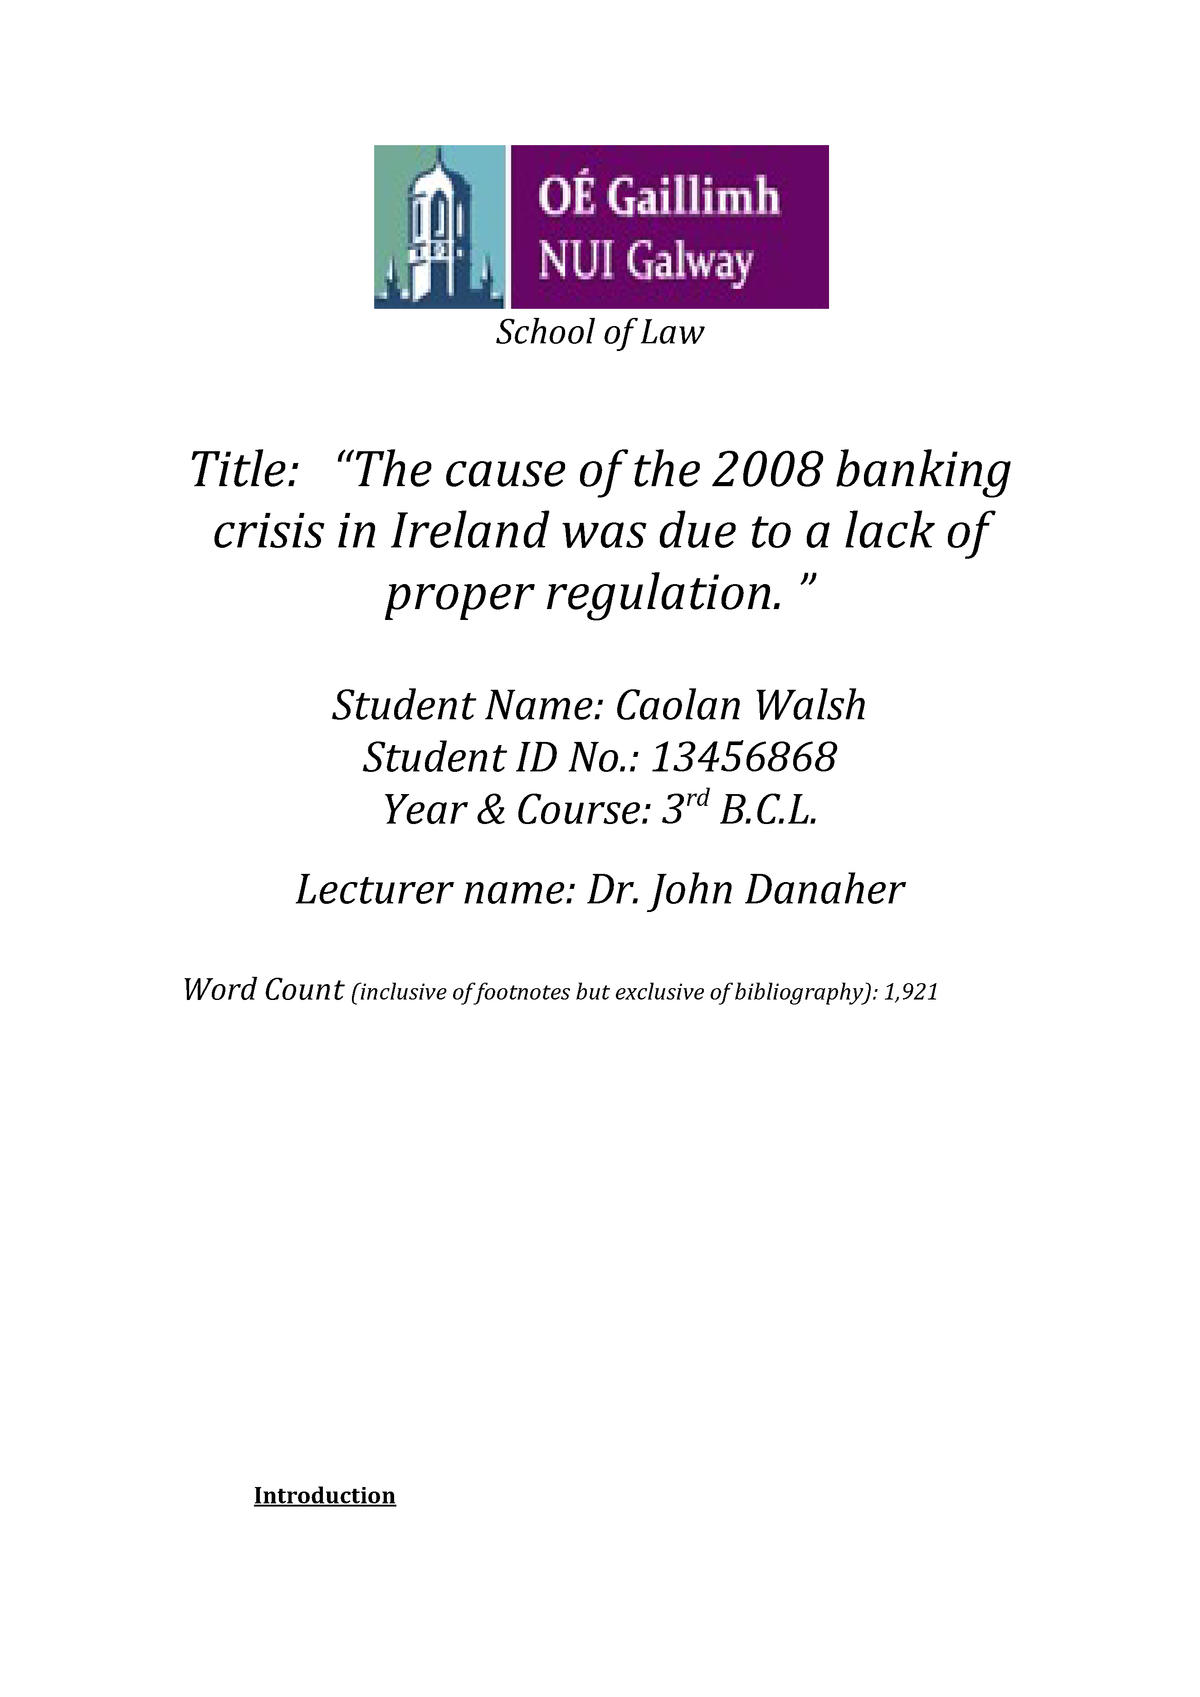 The cause of the 2008 banking crisis in Ireland was due to a lack of